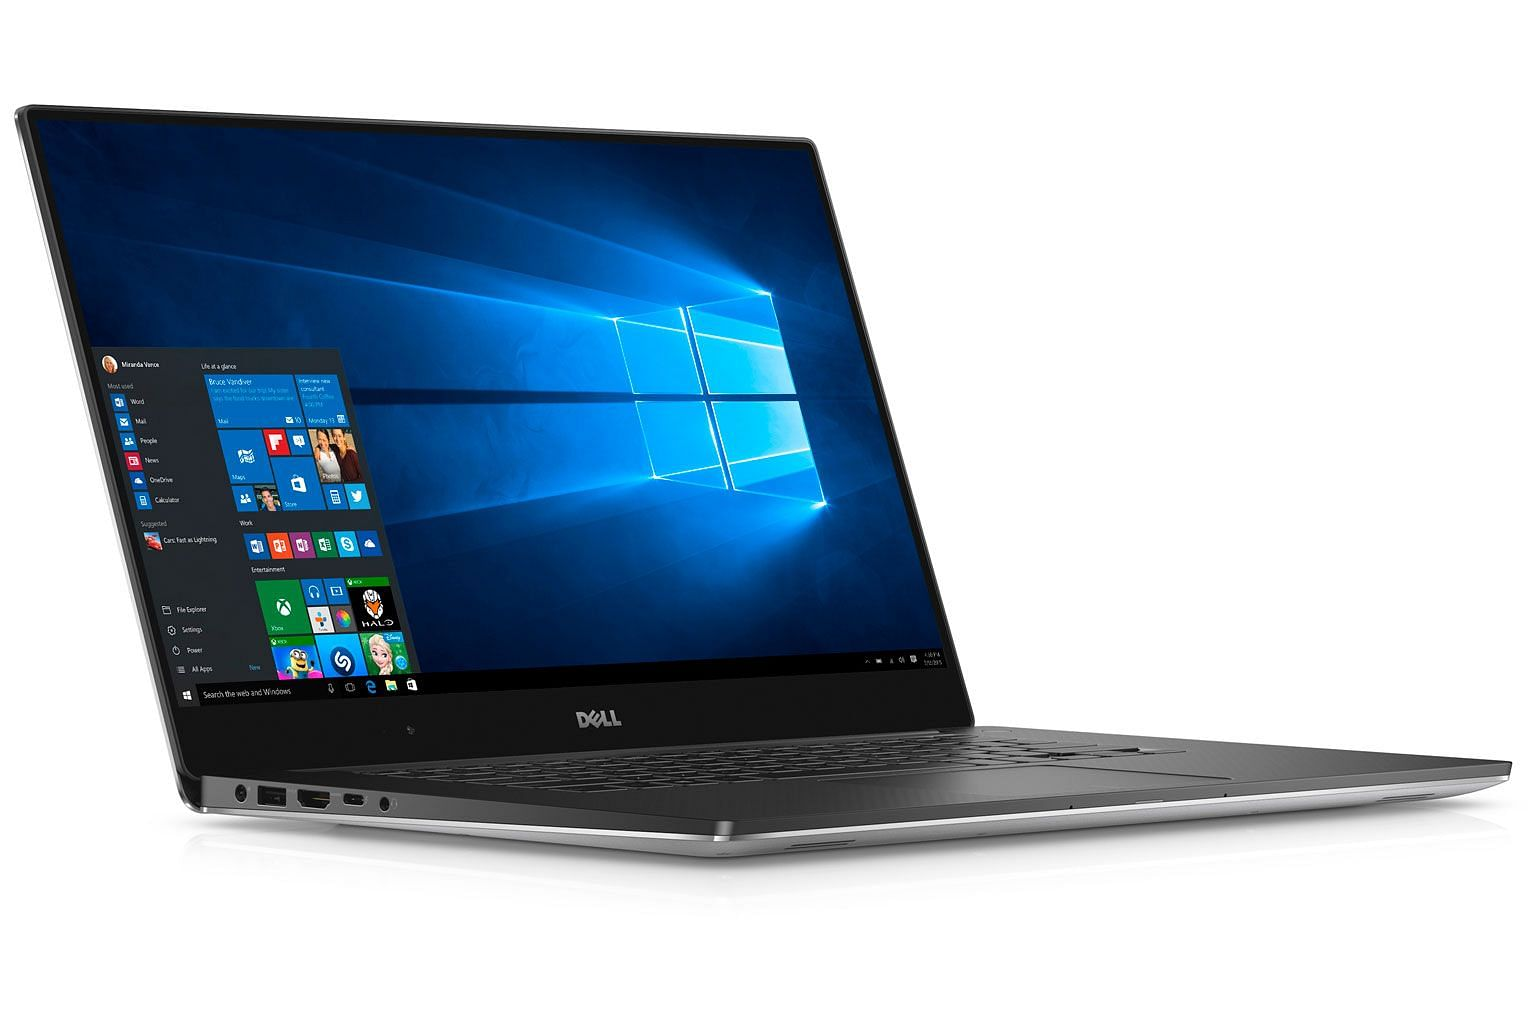 The Dell XPS 15 (Model 9550) Touch 15-inch notebook computer (left), codenamed Berlinetta XPS.